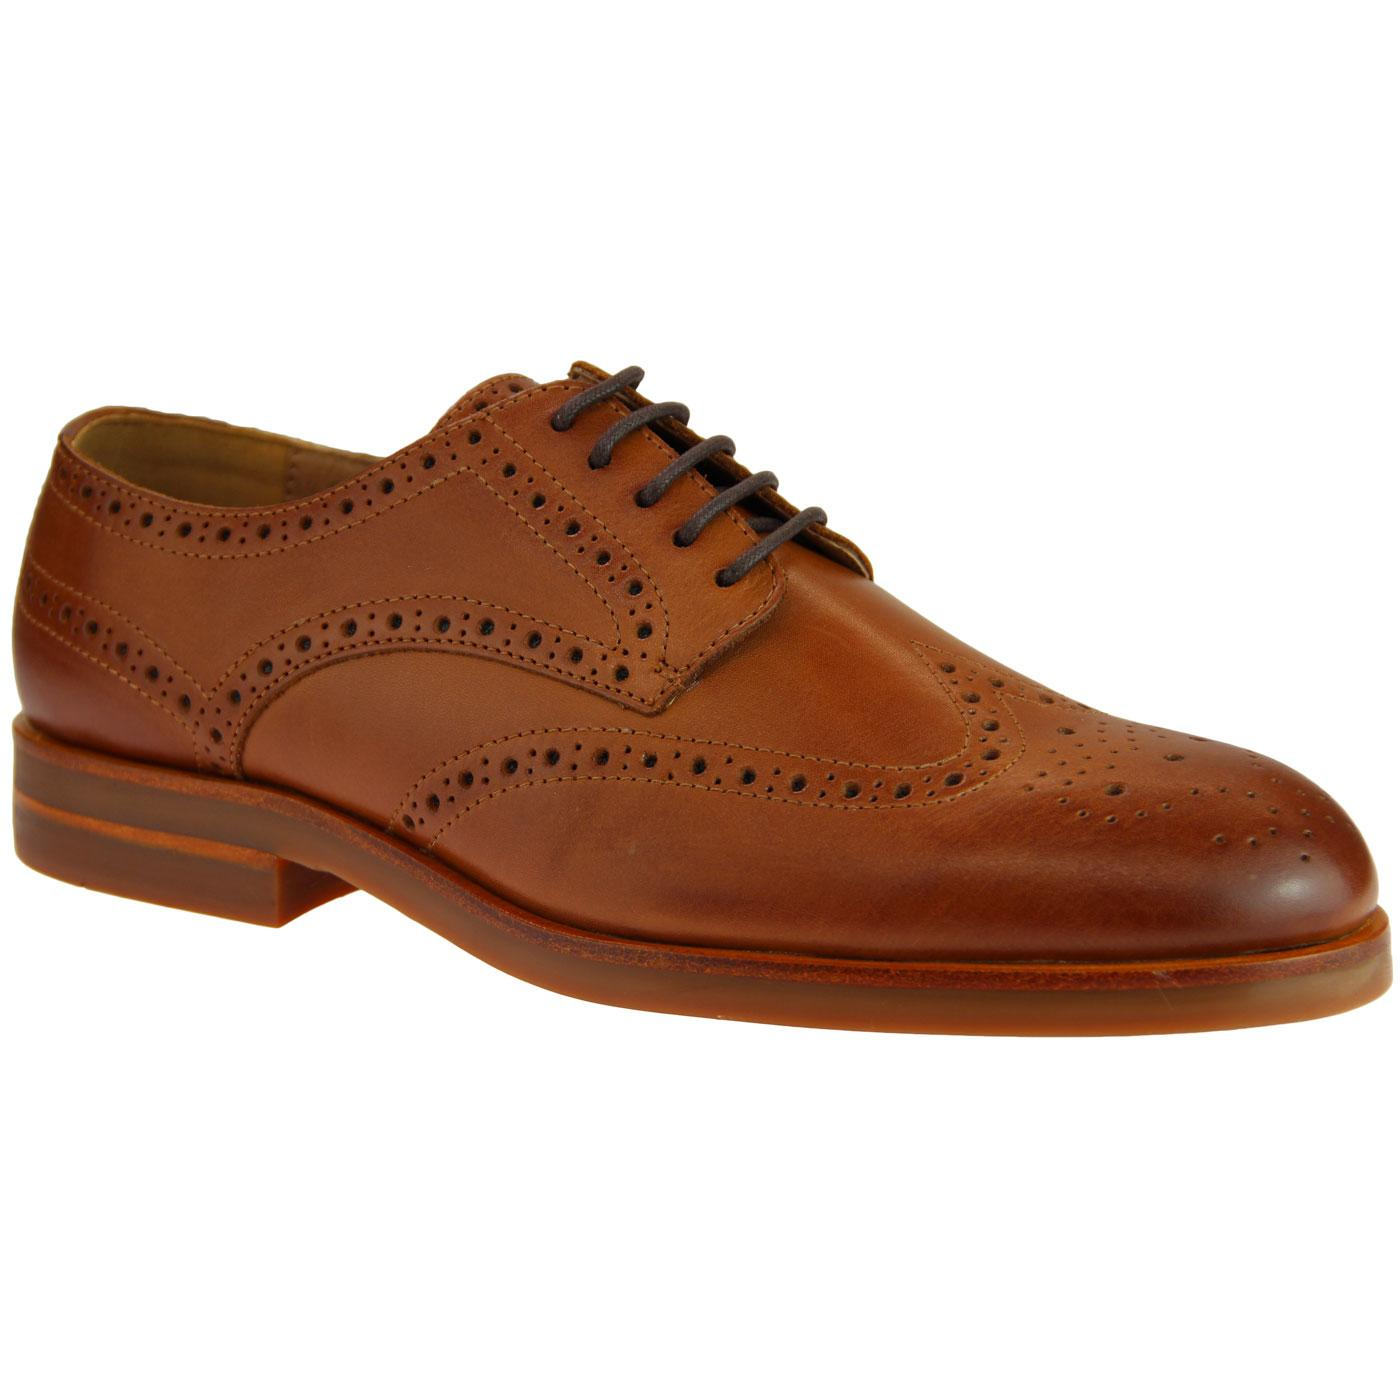 Ballater HUDSON Men's 60s Mod Wingtip Brogues TAN